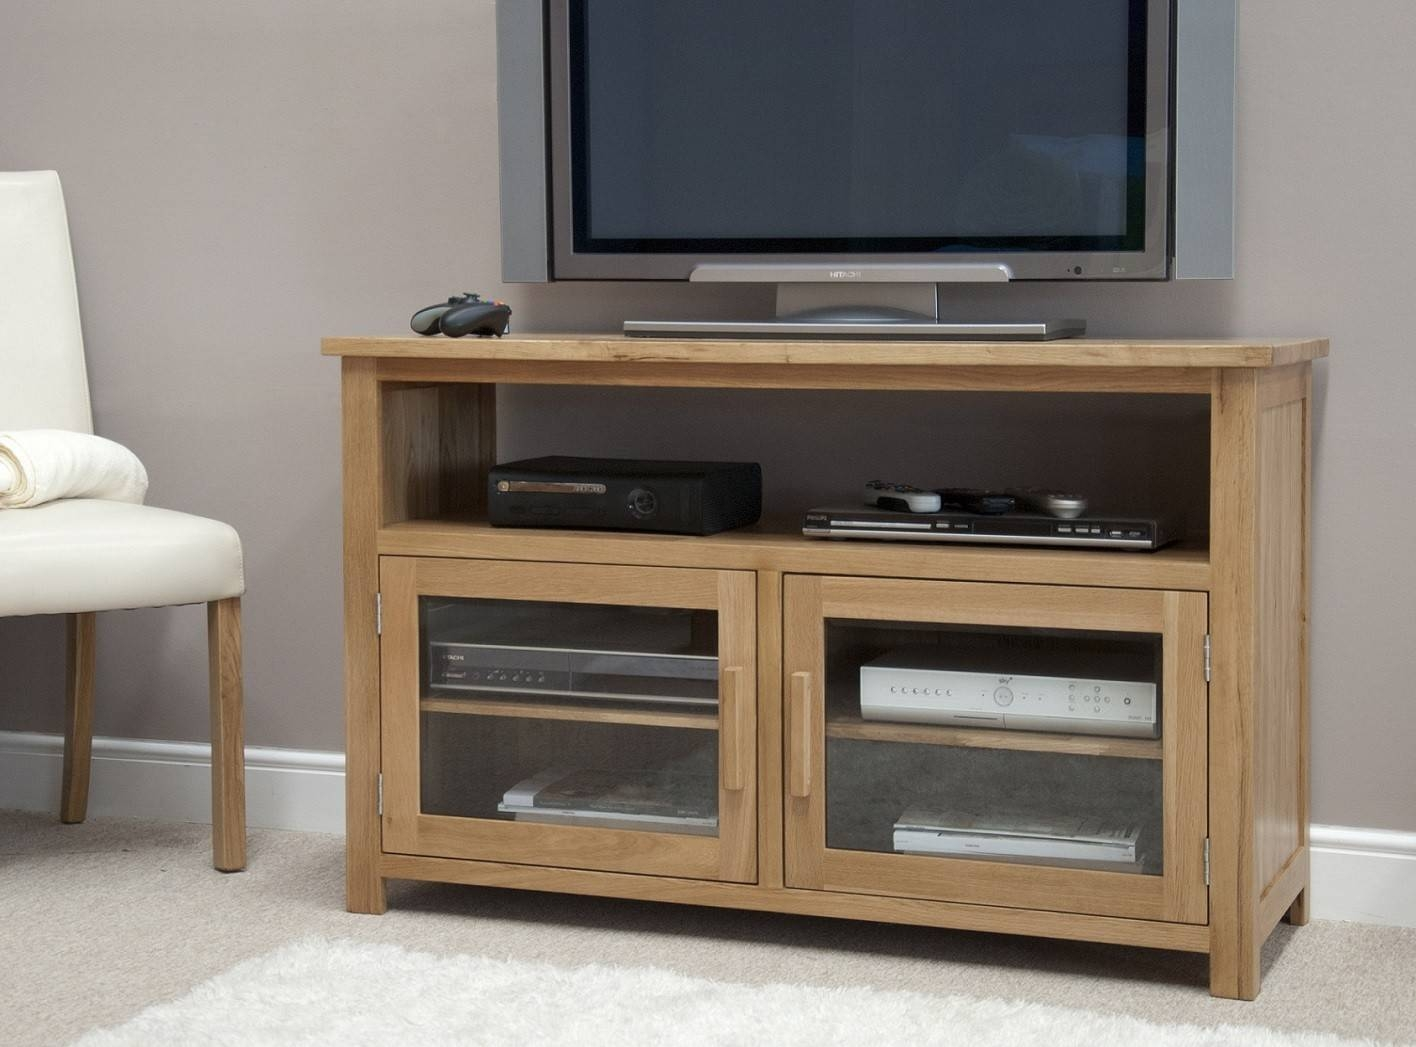 Opus Solid Oak Tv/entertainment Unit | Oak Furniture Uk inside Tv Entertainment Unit (Image 5 of 15)